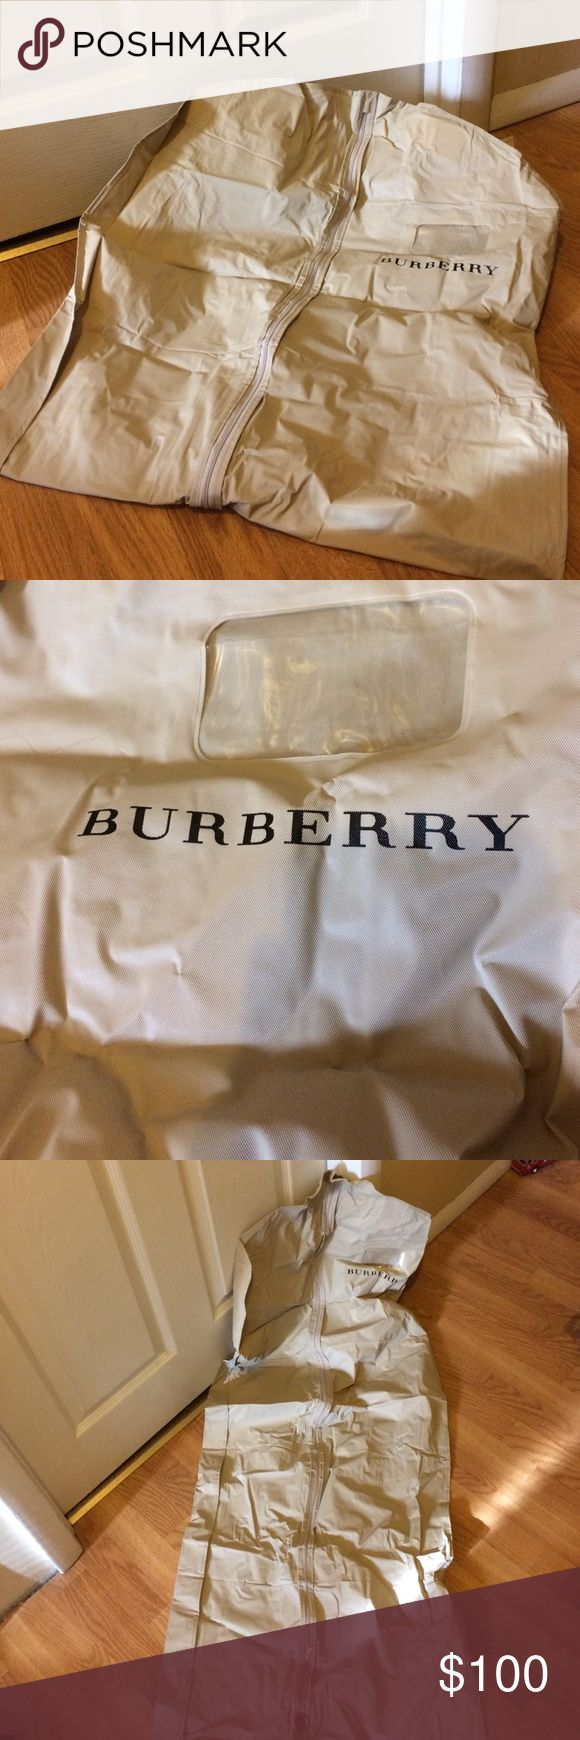 Burberry vinyl zippy garment bag no hanger Burberry garment bag no hanger garment bag only please look at pictures for condition will be folded when shipped measurements are approximate length 50 inches 20 inches across no returns please ask all questions prior to purchase smoke-free pet free home thank you Burberry Bags Travel Bags